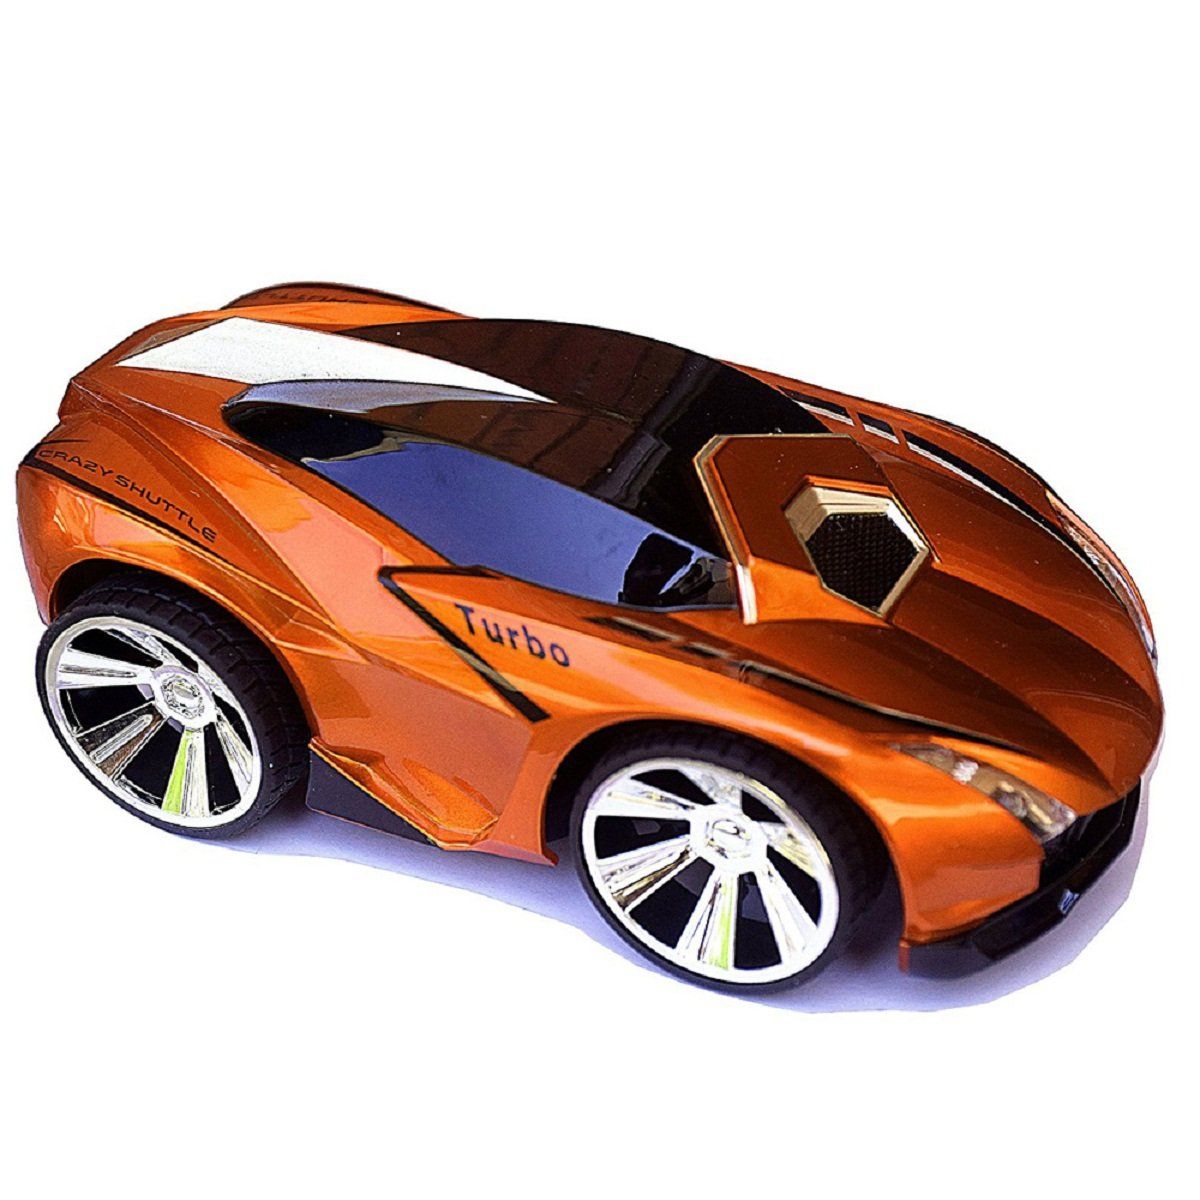 Amazon.com: Megadream Voice Command Car, Rechargable Smart Watch Voice-Activated Remote Control Toy Vehicles with Start Engine & Brake Sound, Spotlight, ...